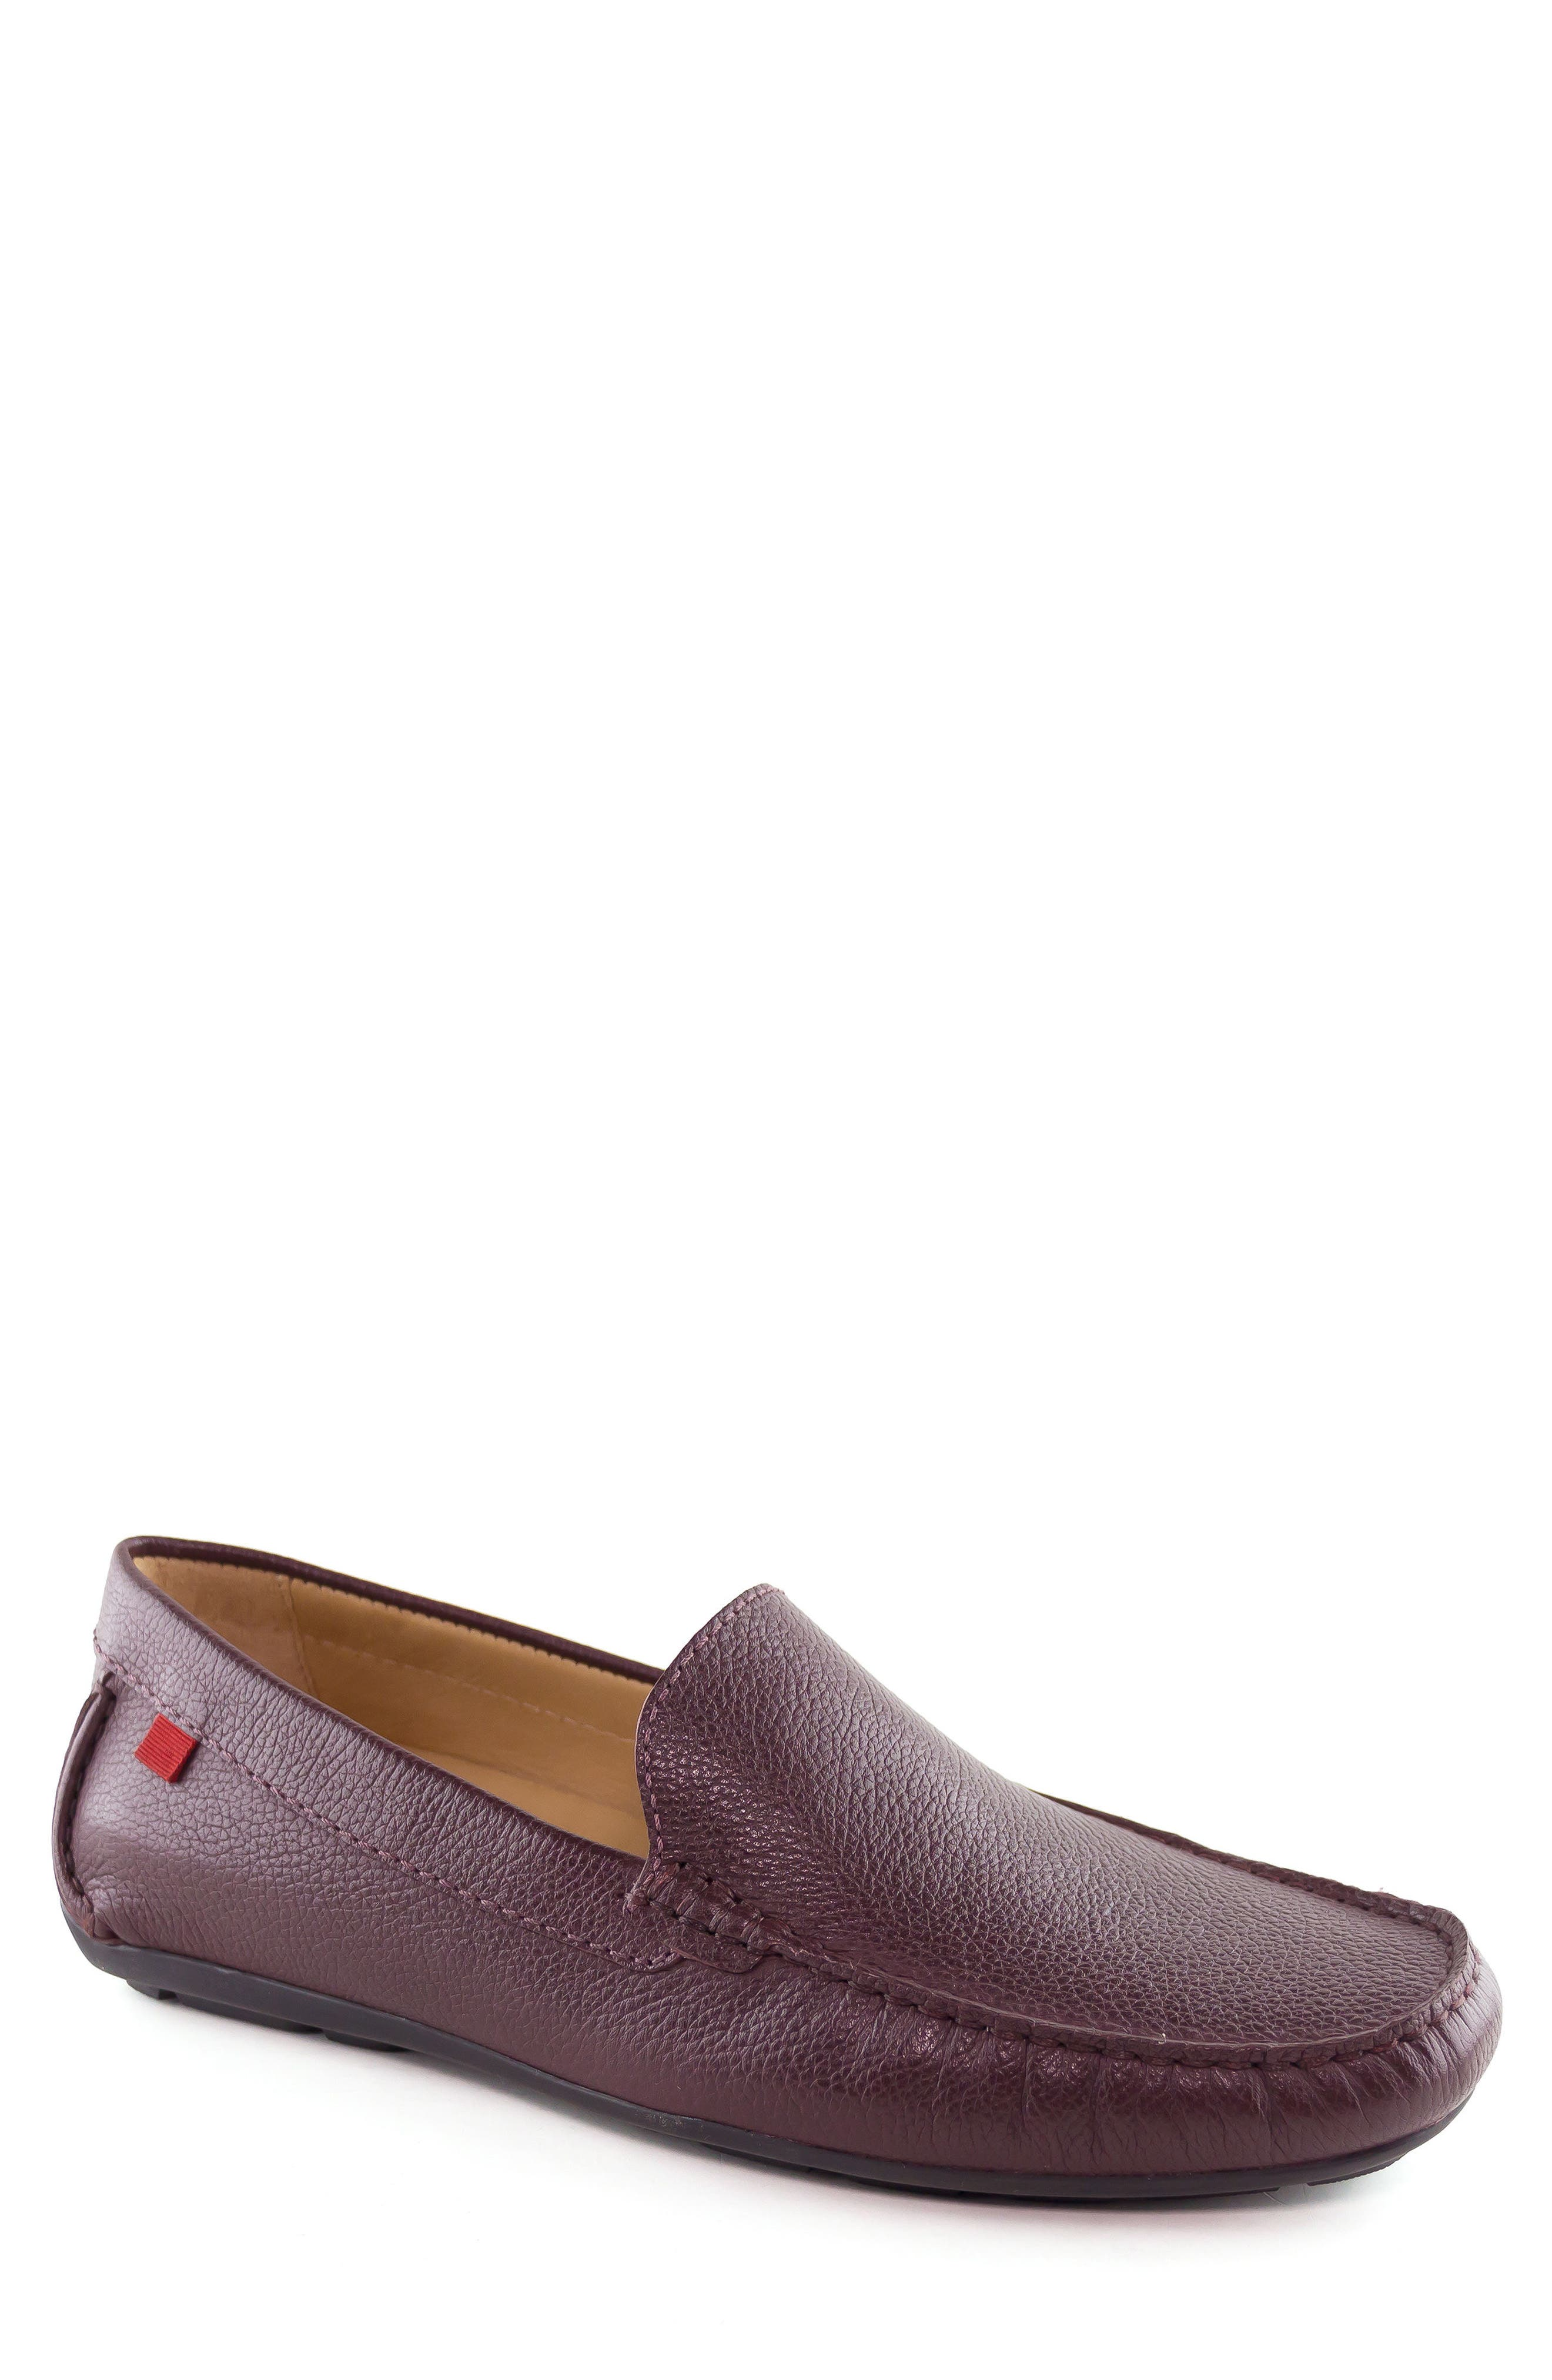 Venetian Driving Loafer,                             Main thumbnail 1, color,                             WINE GRAINY